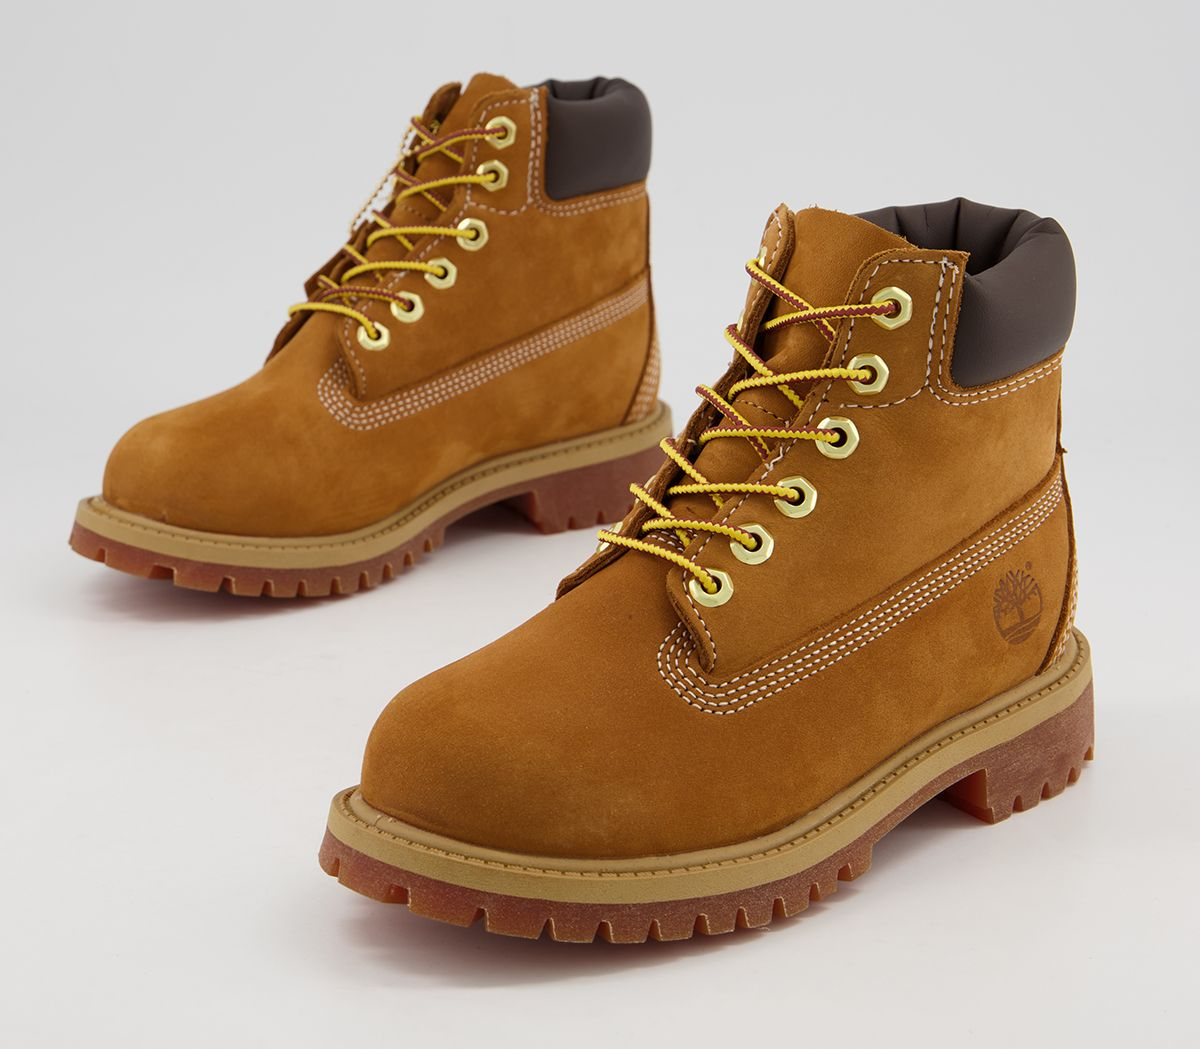 bbccf27f9 Timberland 6 Inch Classic Boots Youth Wheat Nubuck - Unisex